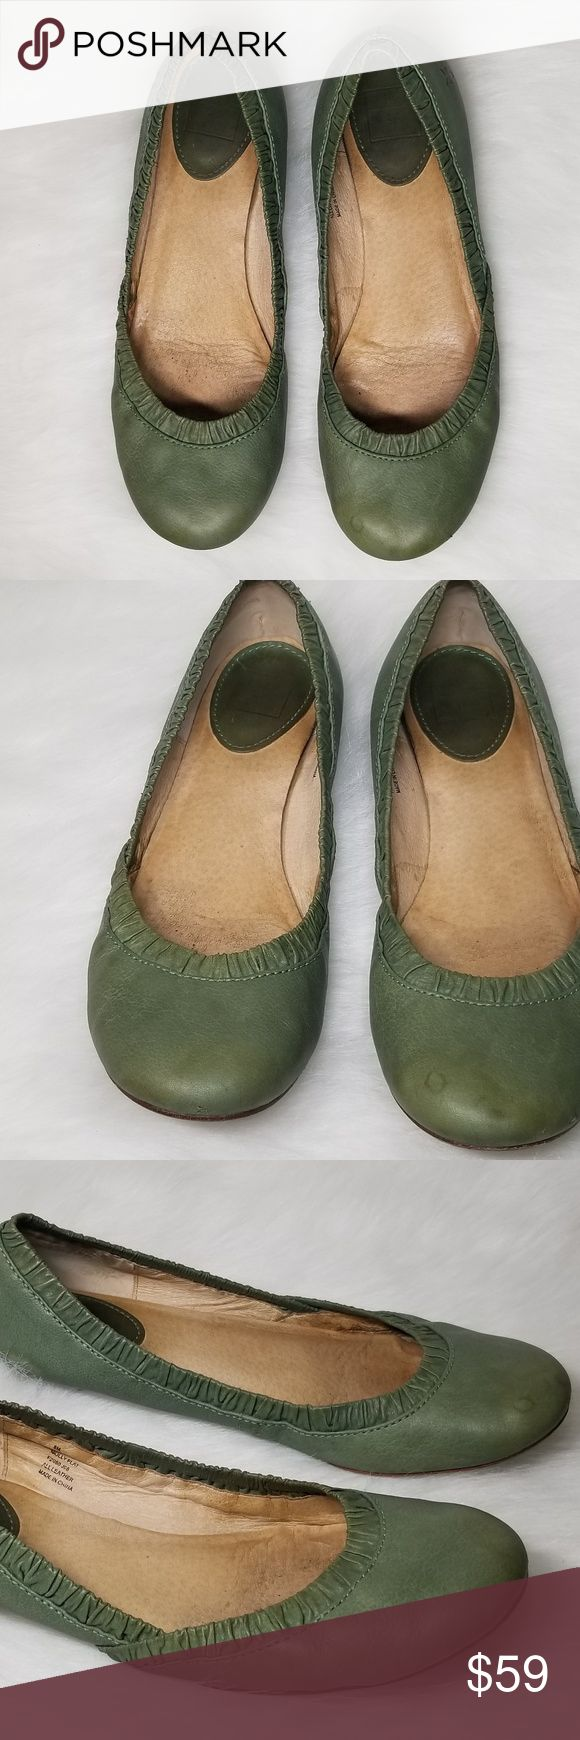 FRYE Molly Green Ballet Flats Leather Shoes Sz 8 Up for sale FRYE Molly Green Ballet Flats Leather Shoes.Flats does have minor flaws and scrathes from normal wear...please view pictures before making purchase.   Sz 8  Color-Soft Green   Material-Leather Frye Shoes Flats & Loafers